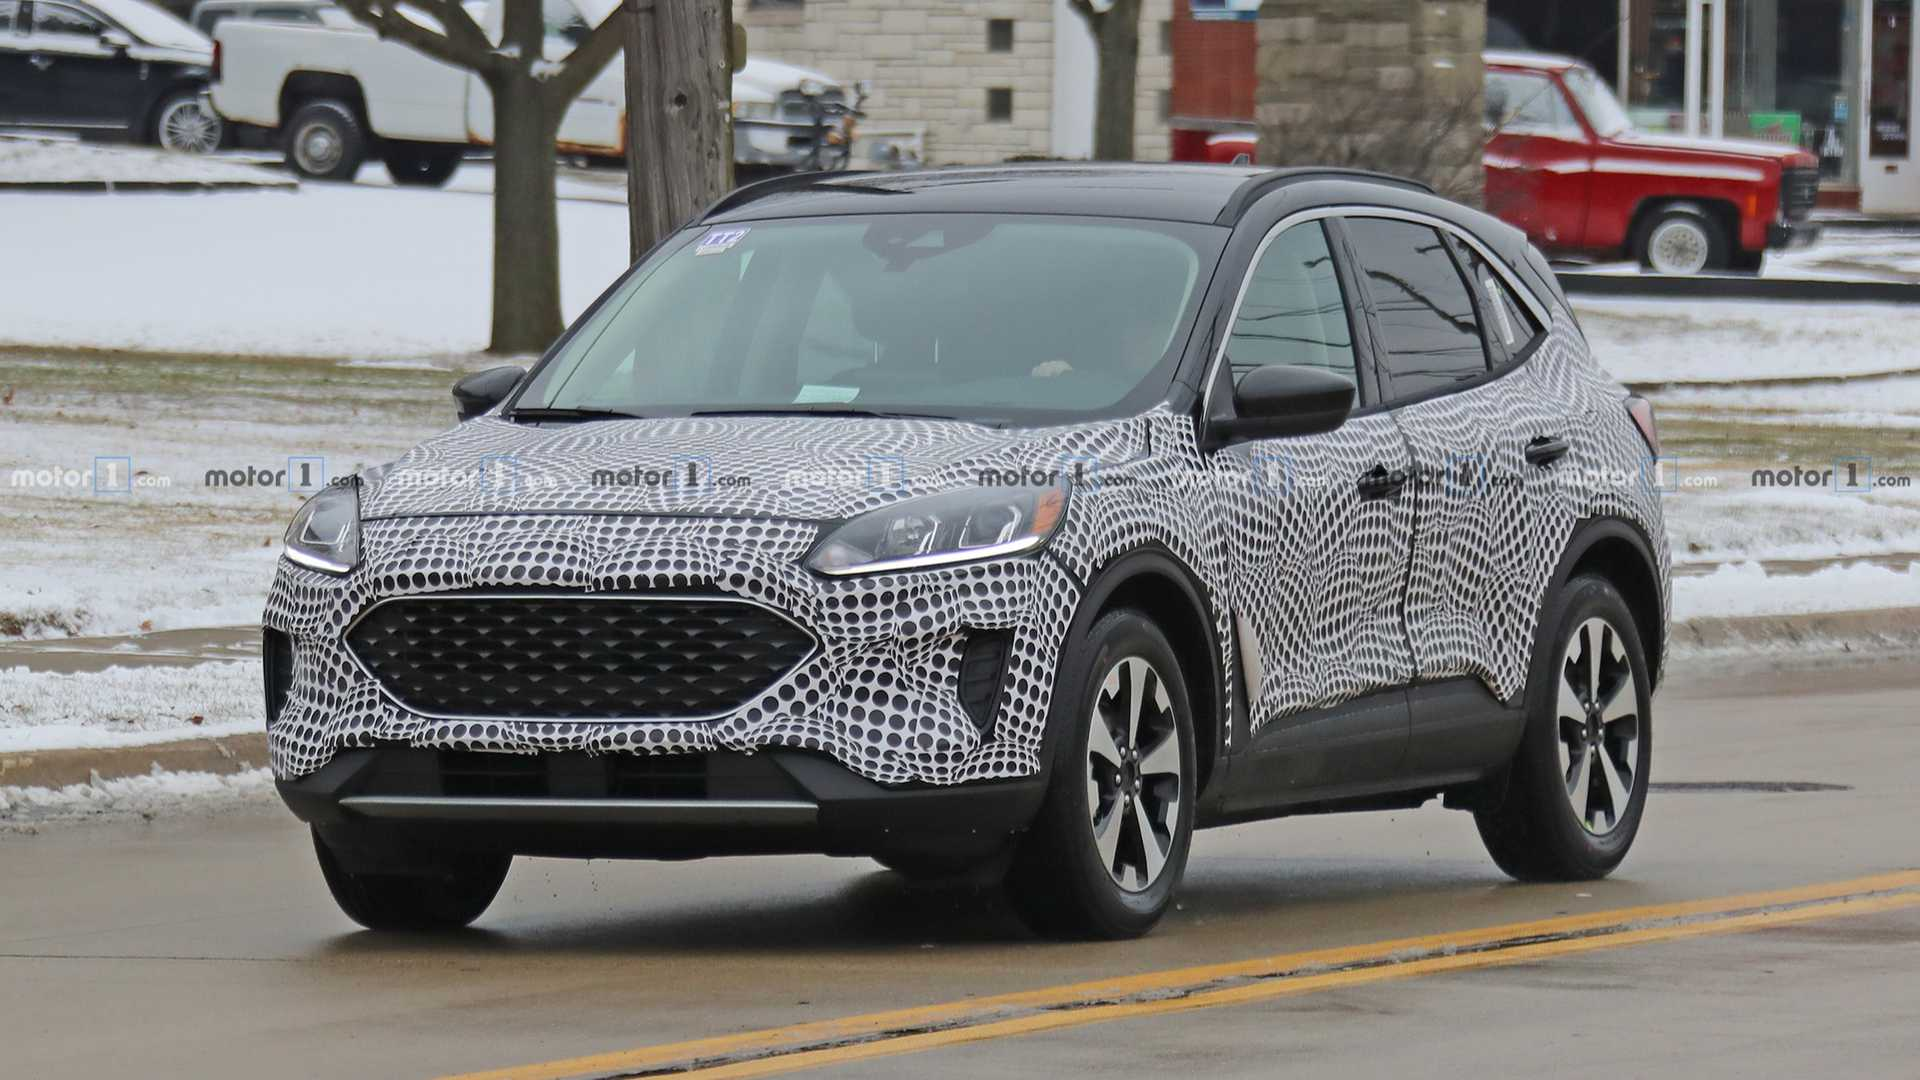 43 New 2020 Ford Crossover Rumors